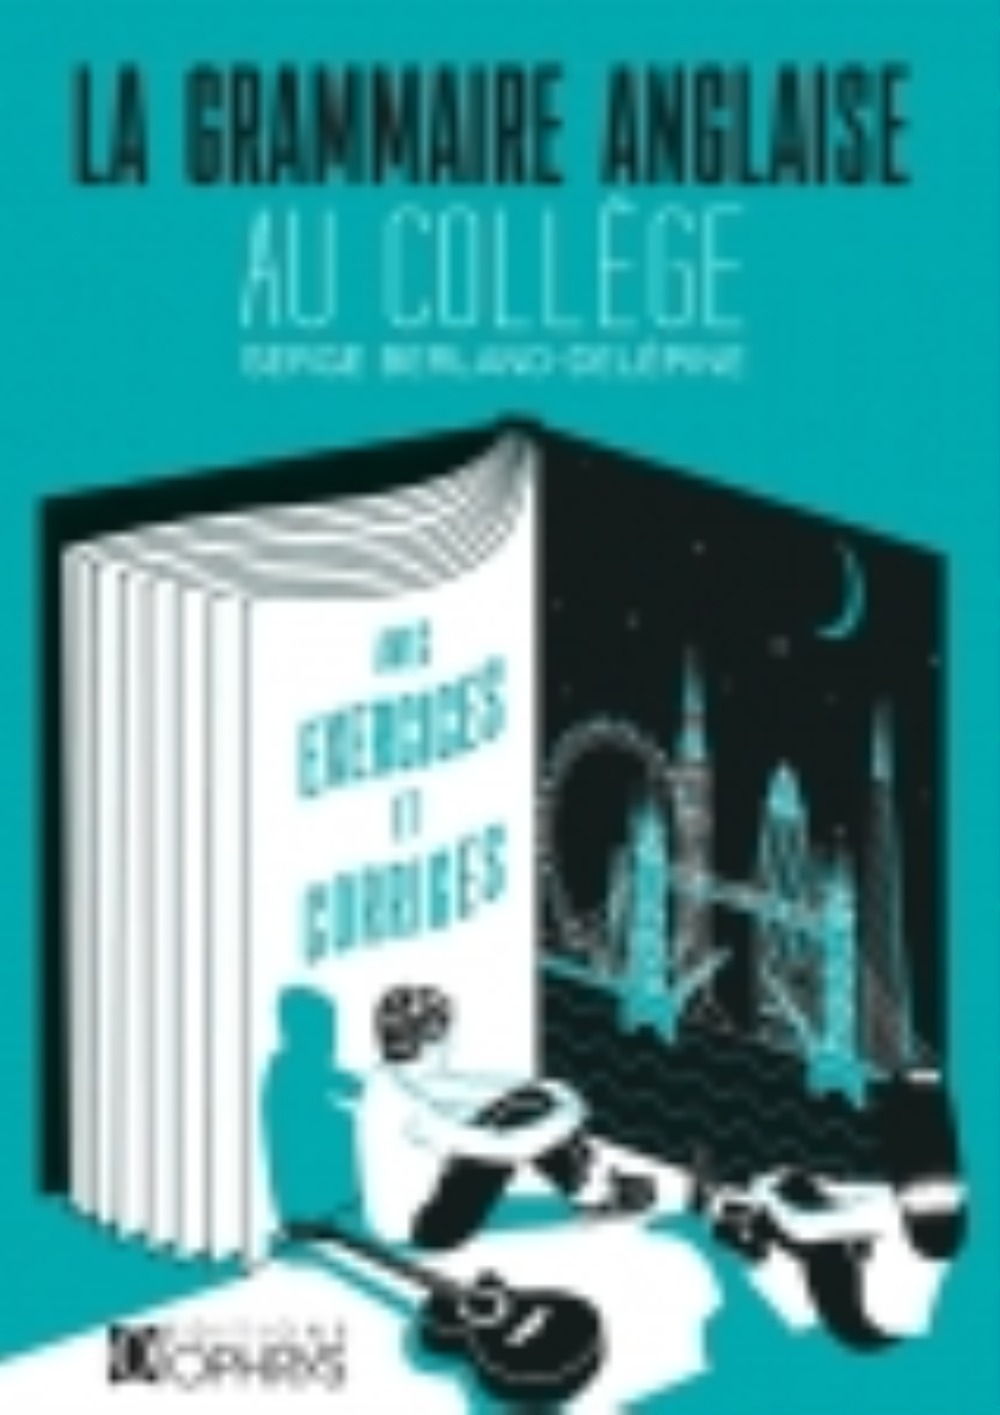 GRAMMAIRE ANGLAISE AU COLLEGE